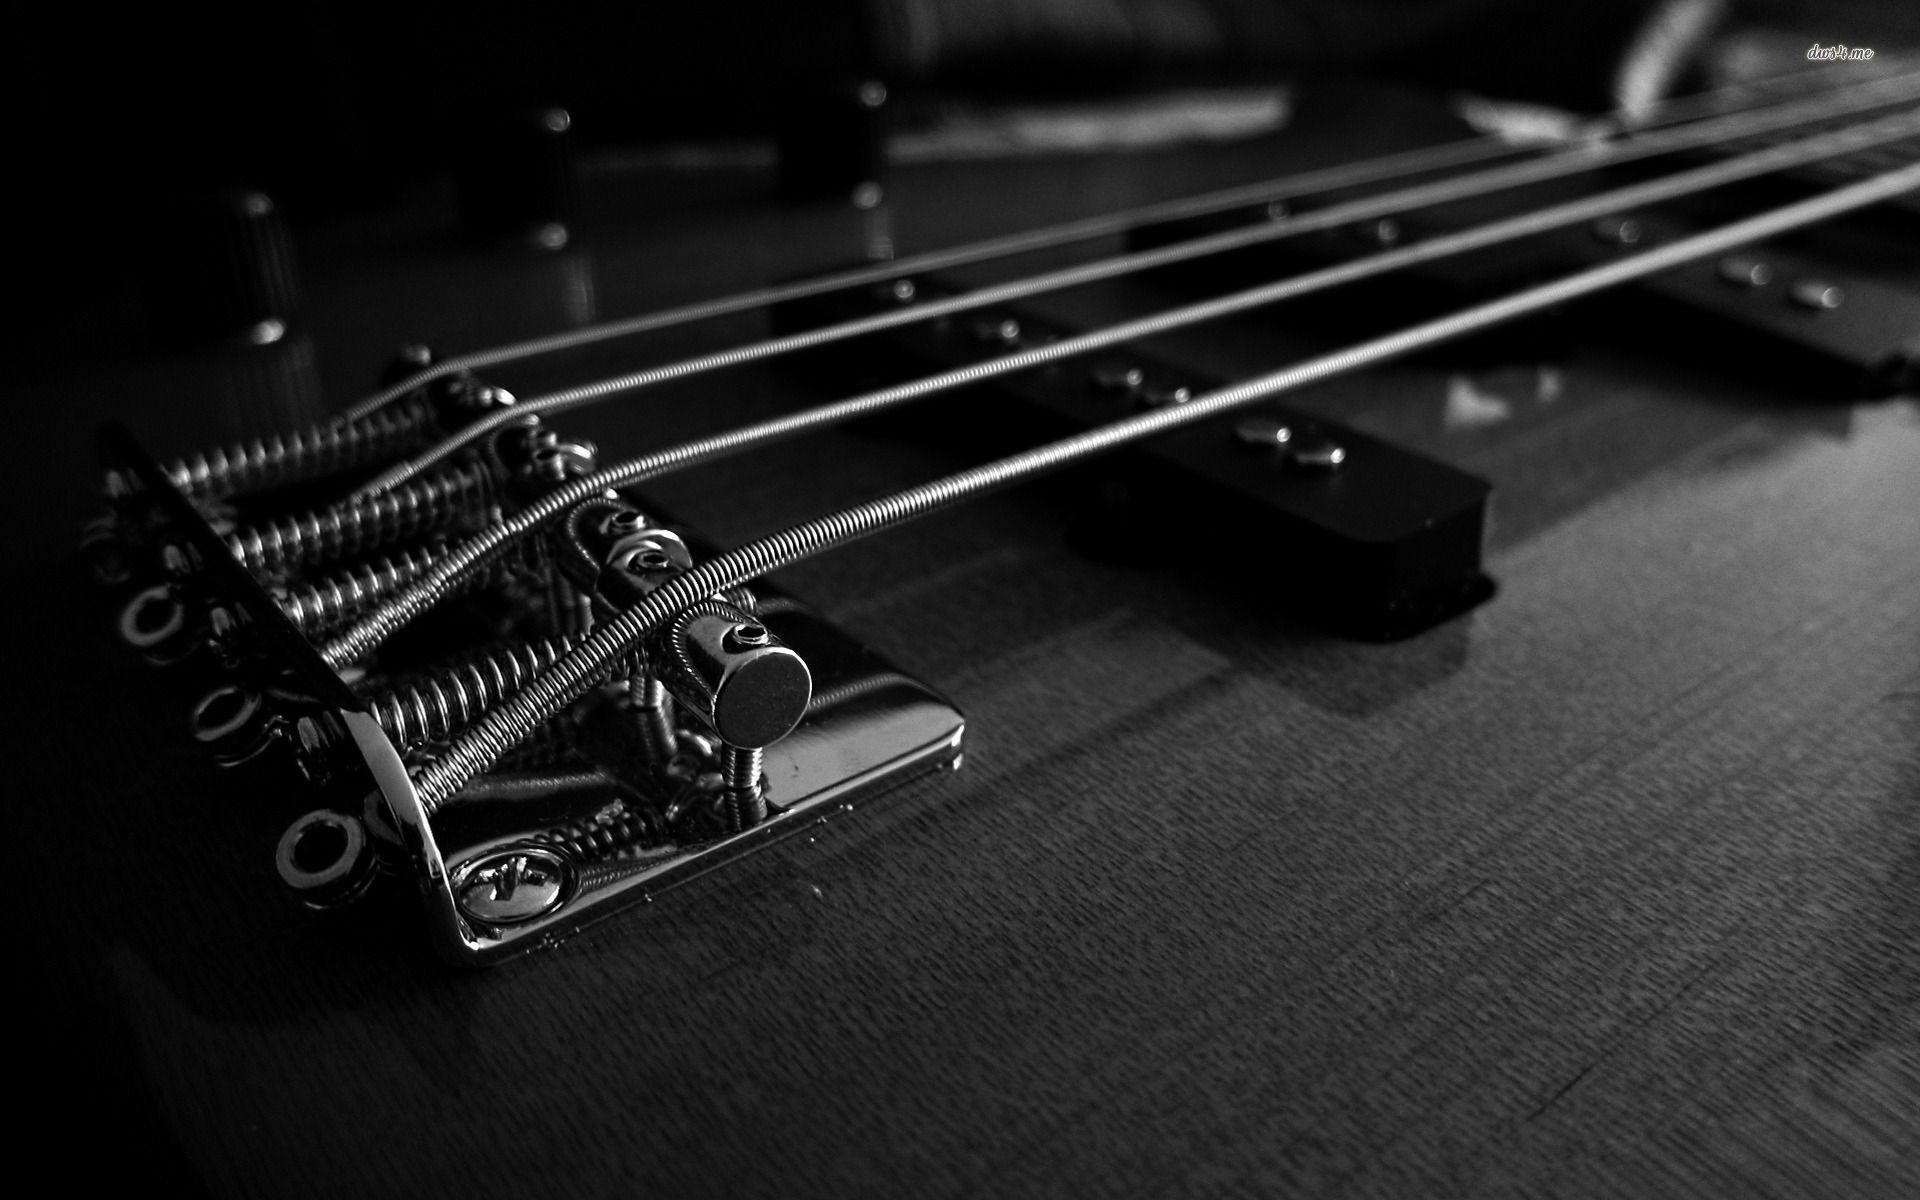 Fender Bass Wallpaper Images amp Pictures   Becuo 1920x1200